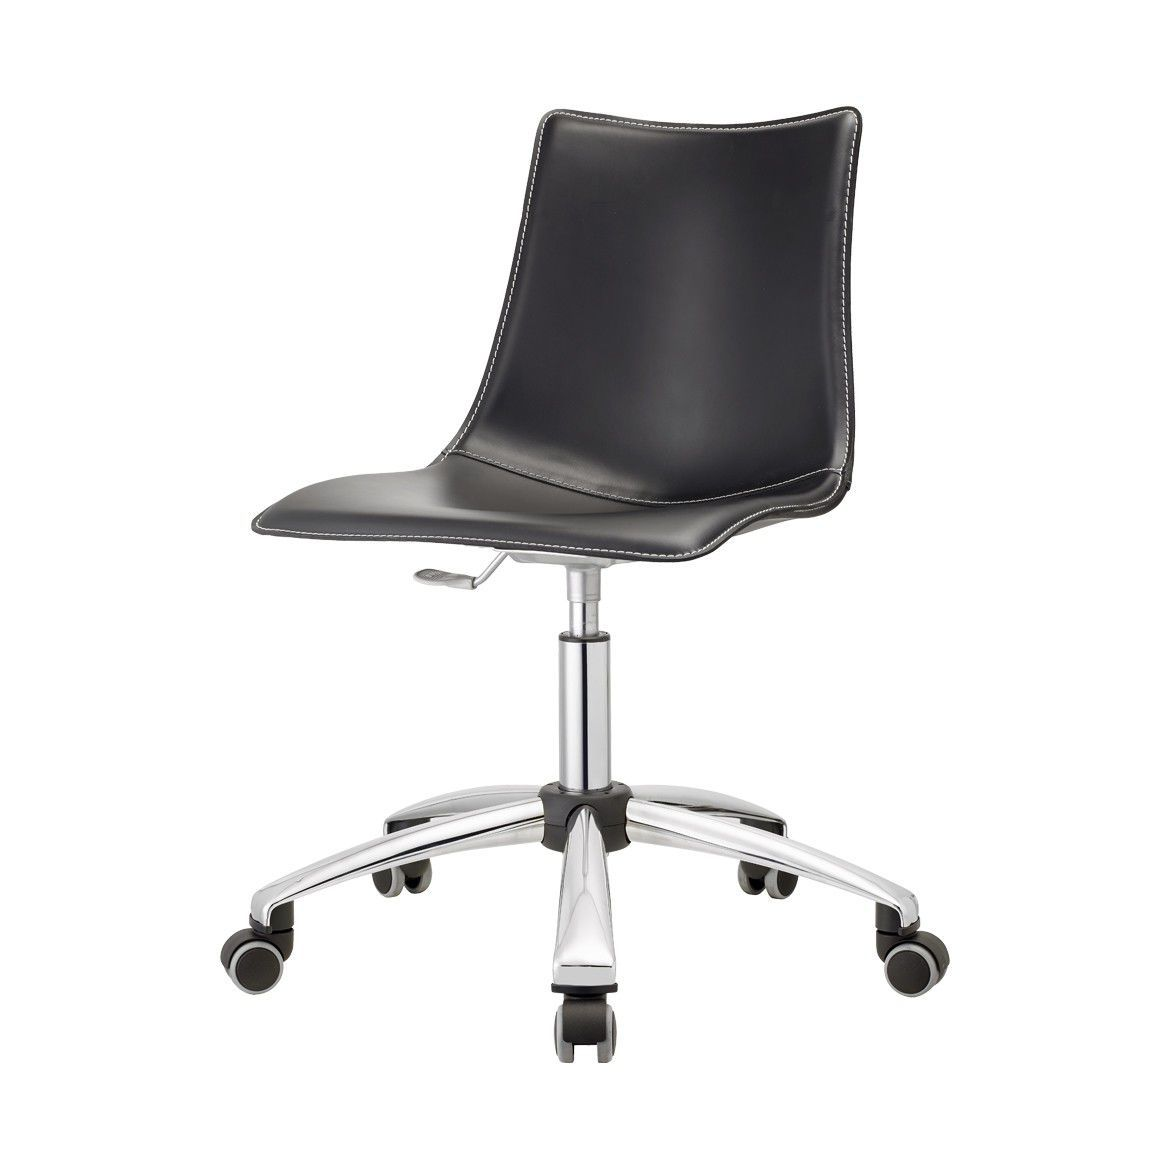 Zebra Desk Chair Contemporary Office Chair On Casters Star Base Upholstered